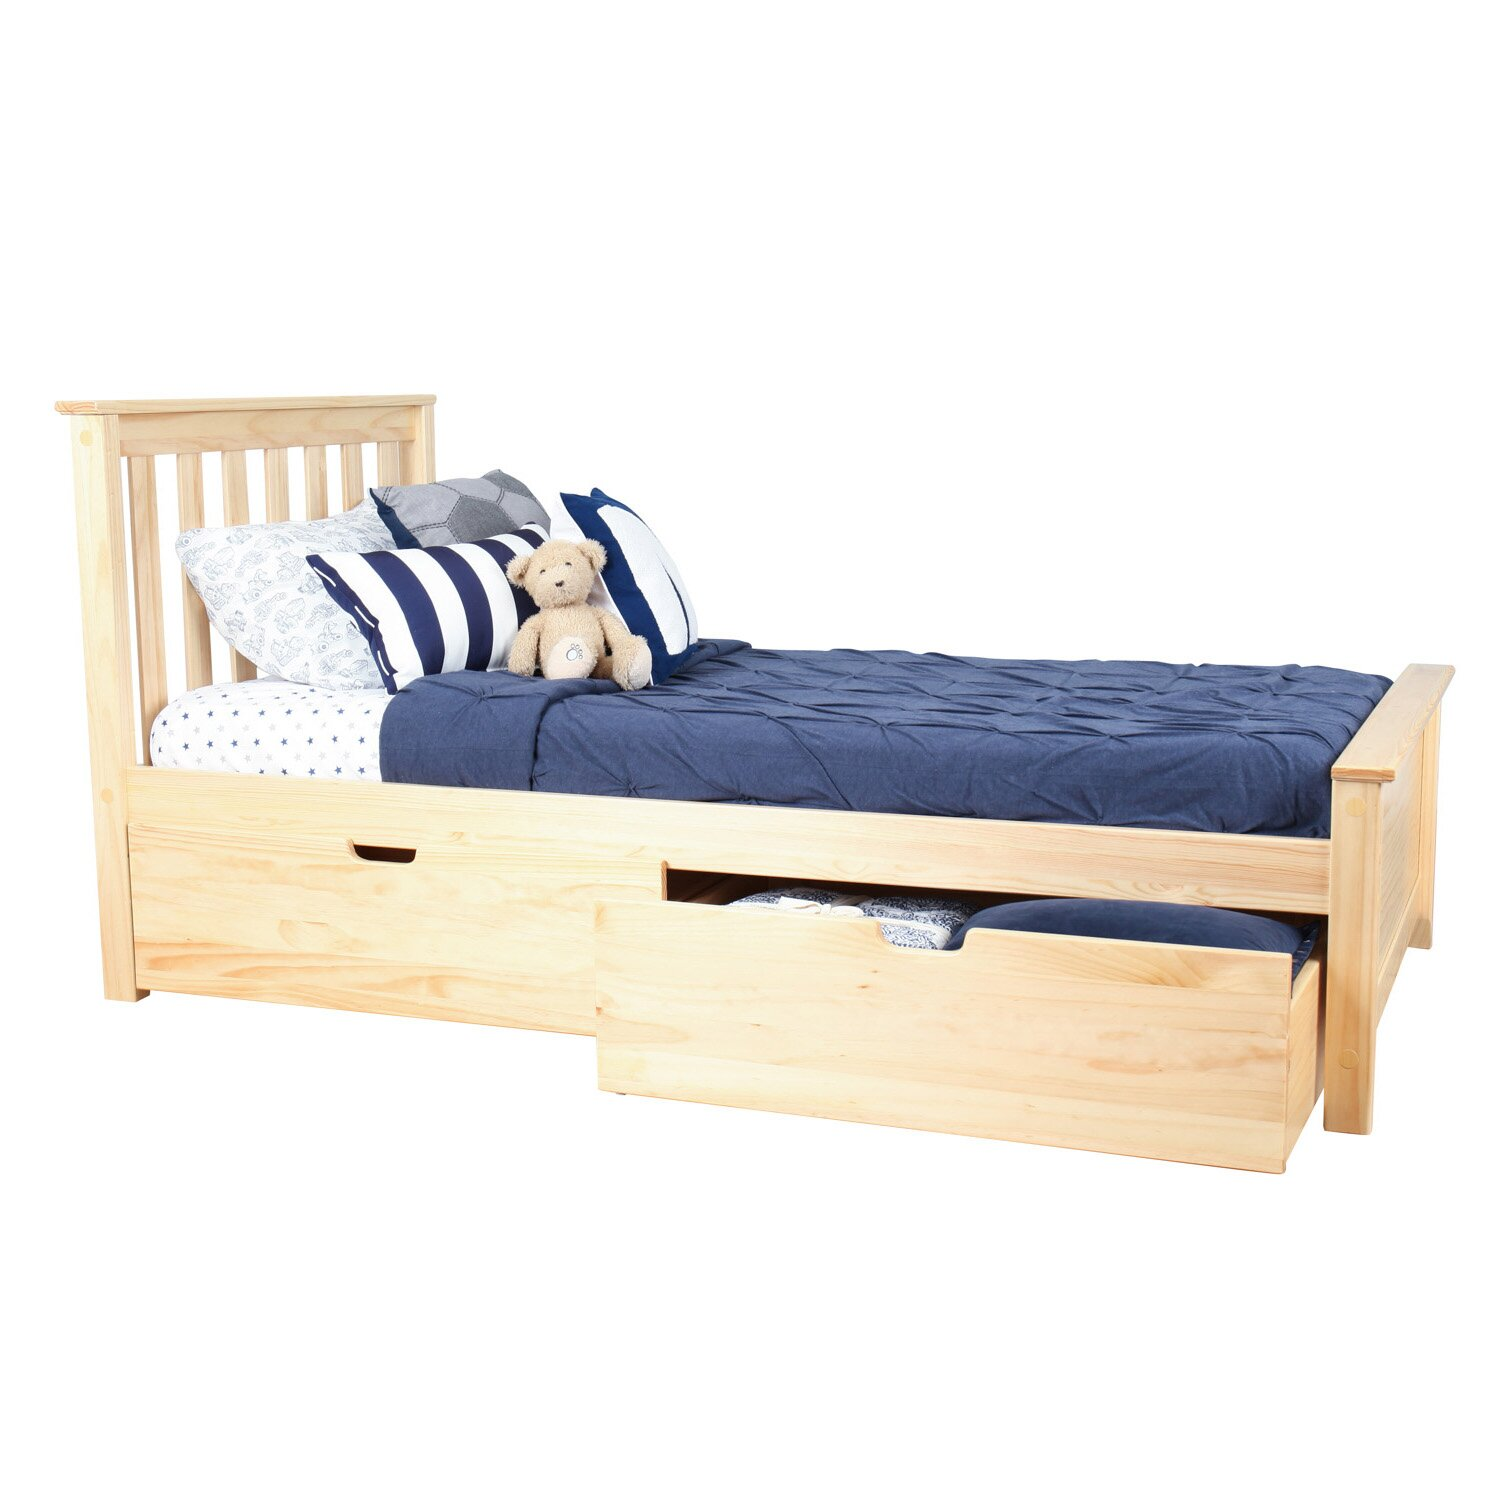 how to build a twin platform bed with storage underneath